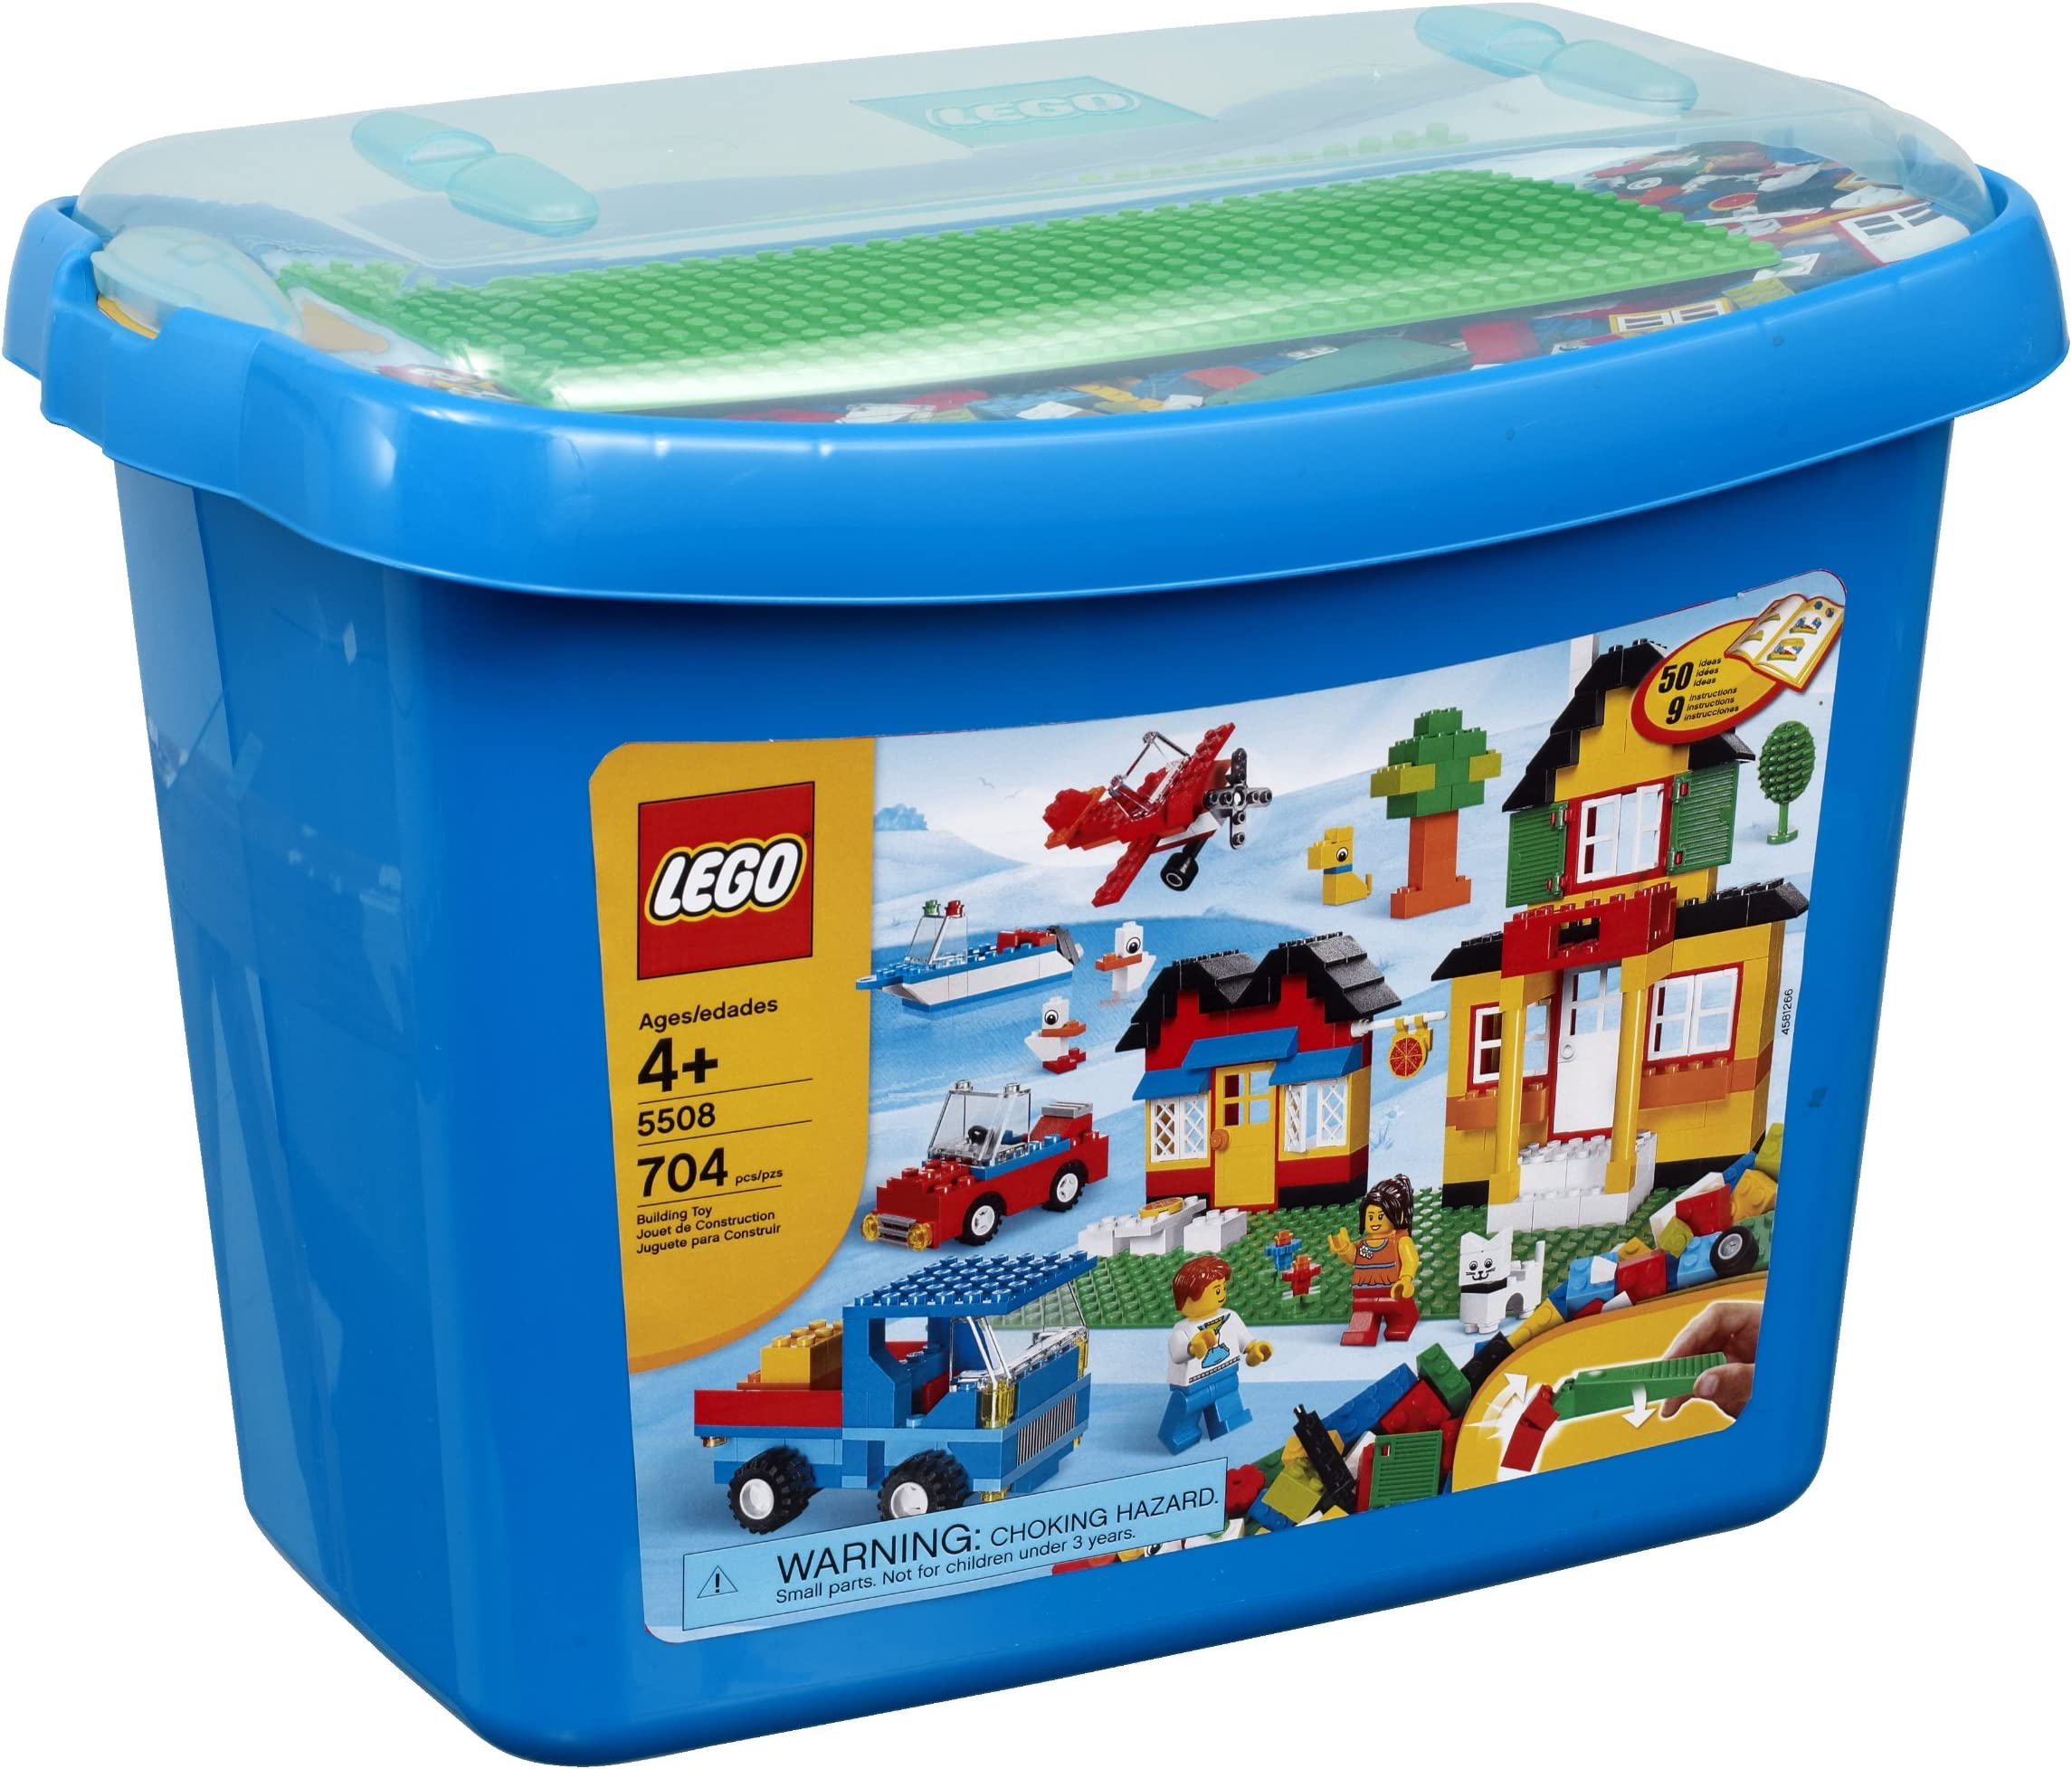 Lego 50 New Assorted Plates Various Colors 1x2 1x4 1x6 1x8 Dot More Pieces